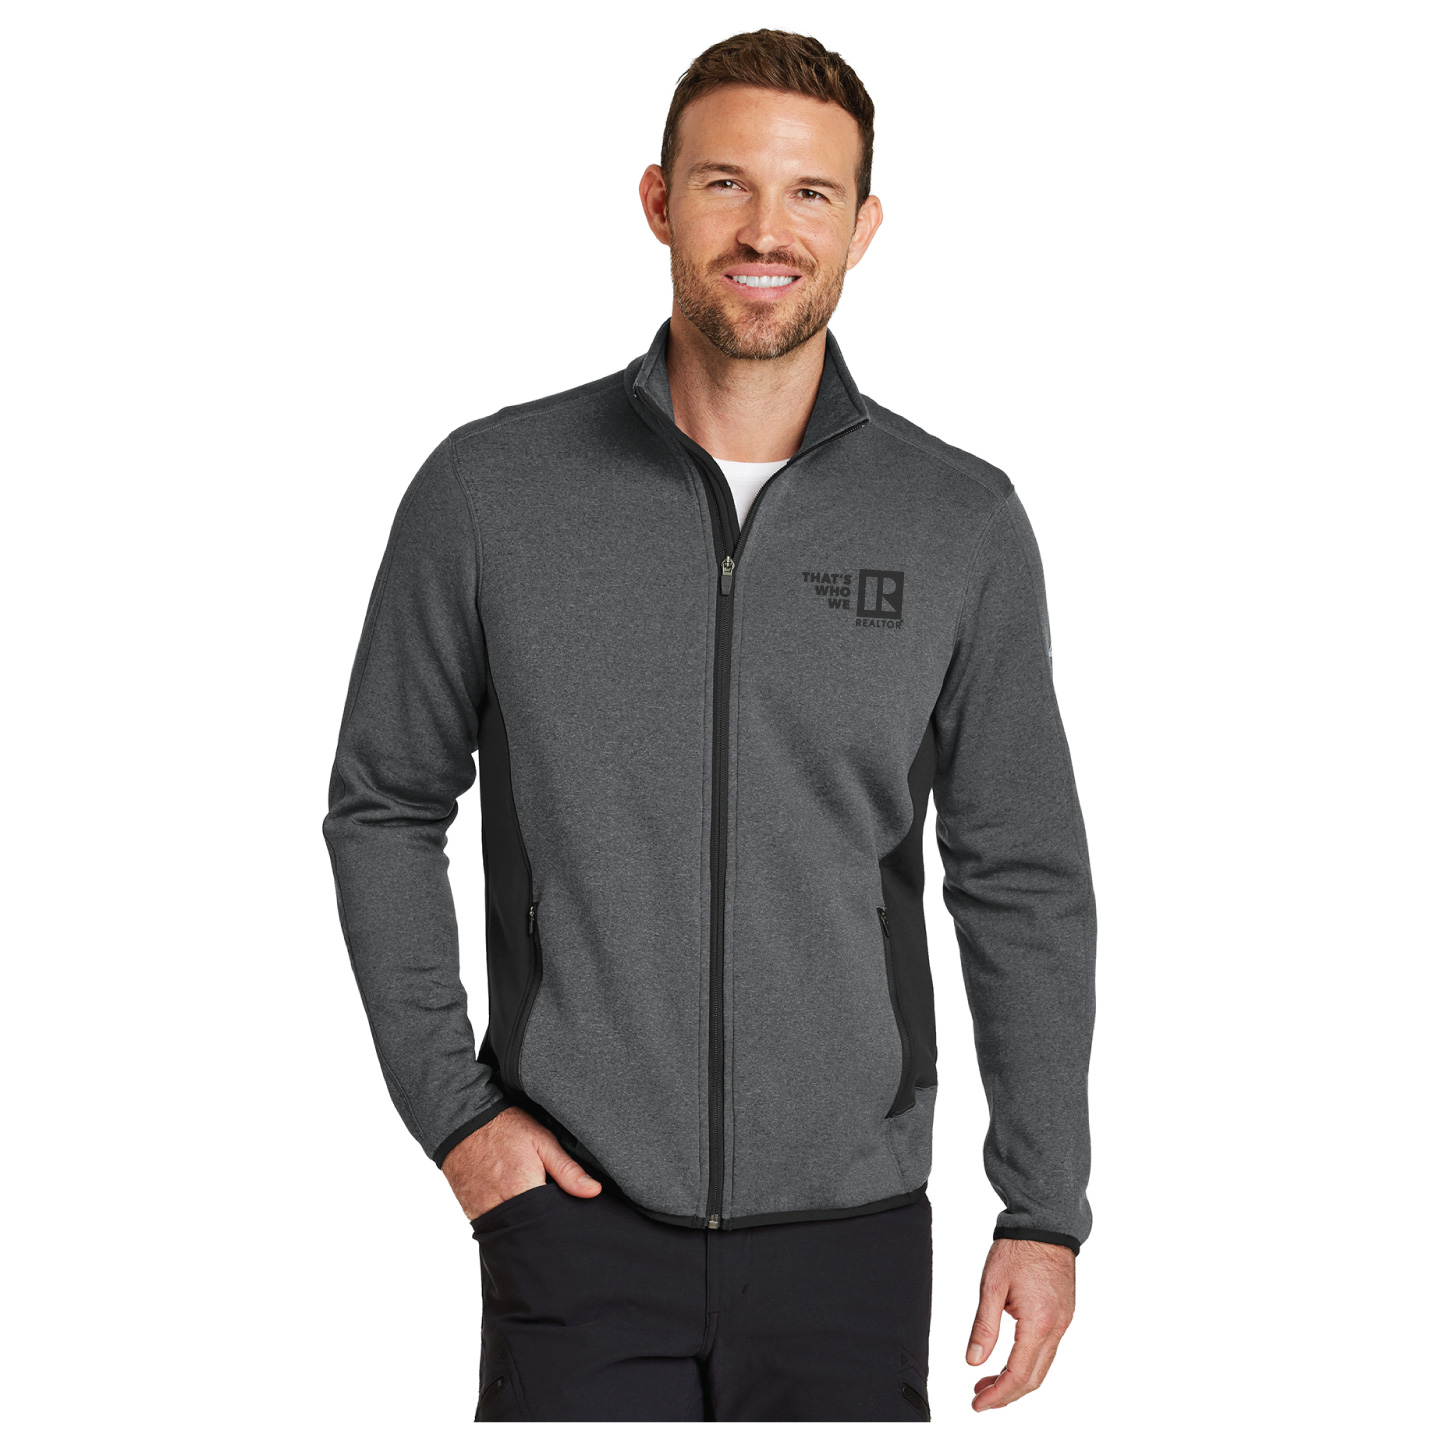 """That's Who We R"" Men's Eddie Bauer Fleece Jacket twwr,ThatsWhoWeR,That's,TWWR,ThatWho,That'sWho,Twwr,Thats,Whos,We,Ares,Jacket, Thats Who, Fleece, Brand, Warm, TWWR, Gift, President, Board, Store, Association,"